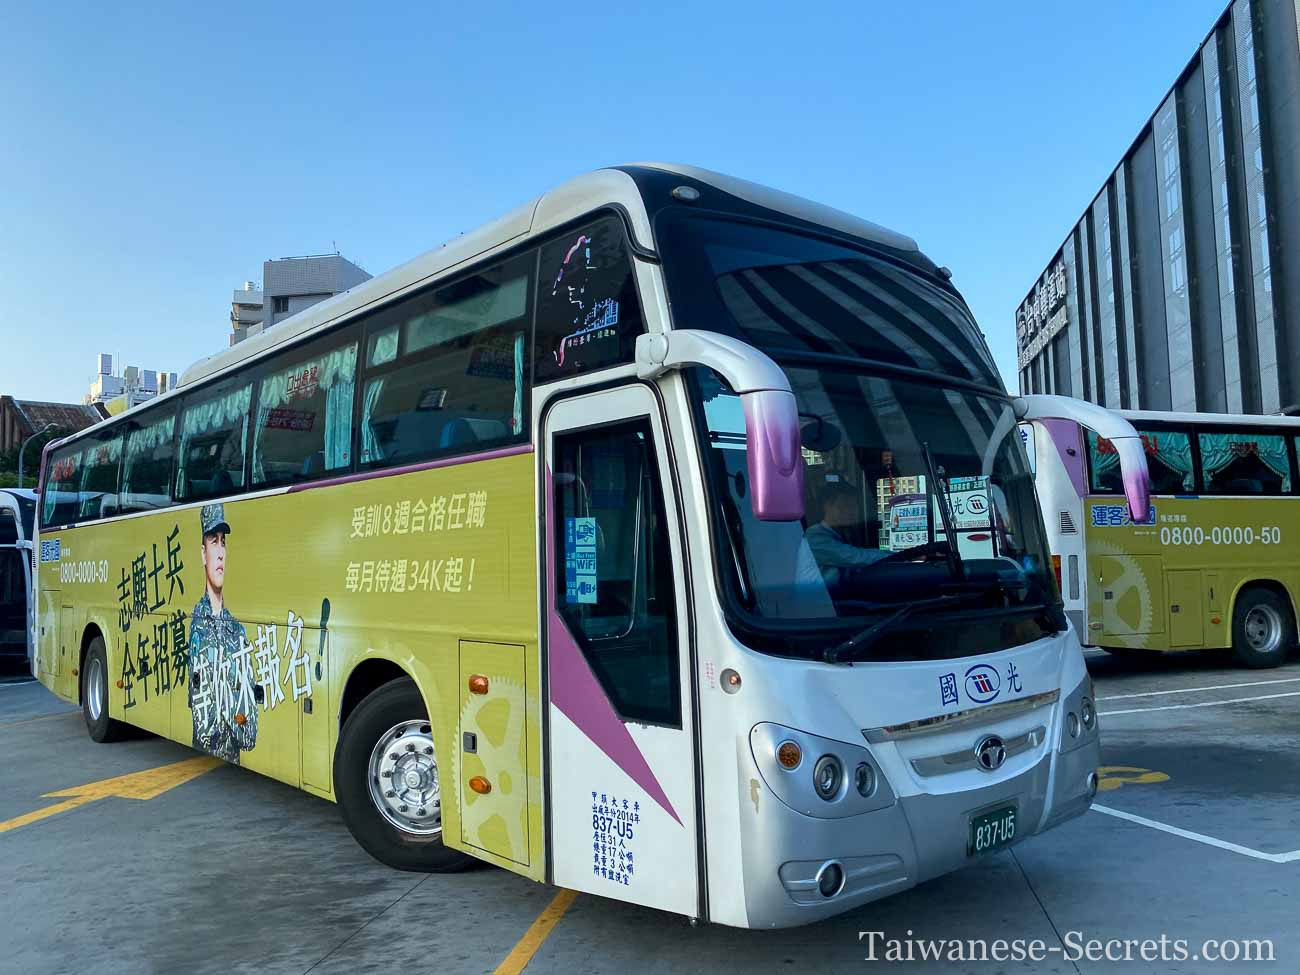 taipei to taichung by bus